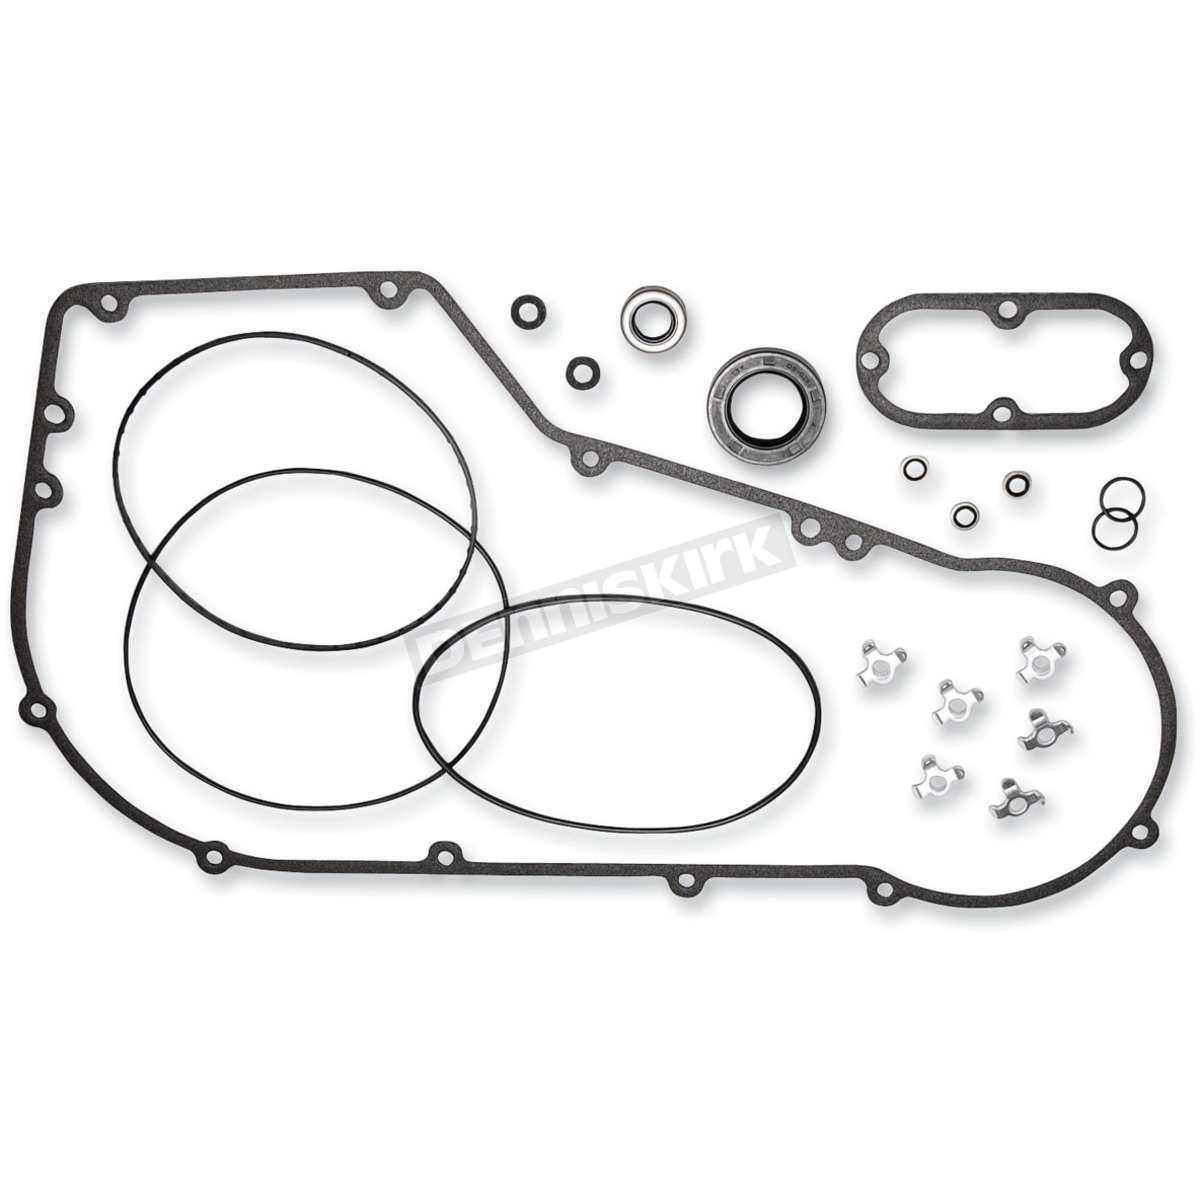 Cometic Afm Series Primary Gasket Seal And O Ring Kit